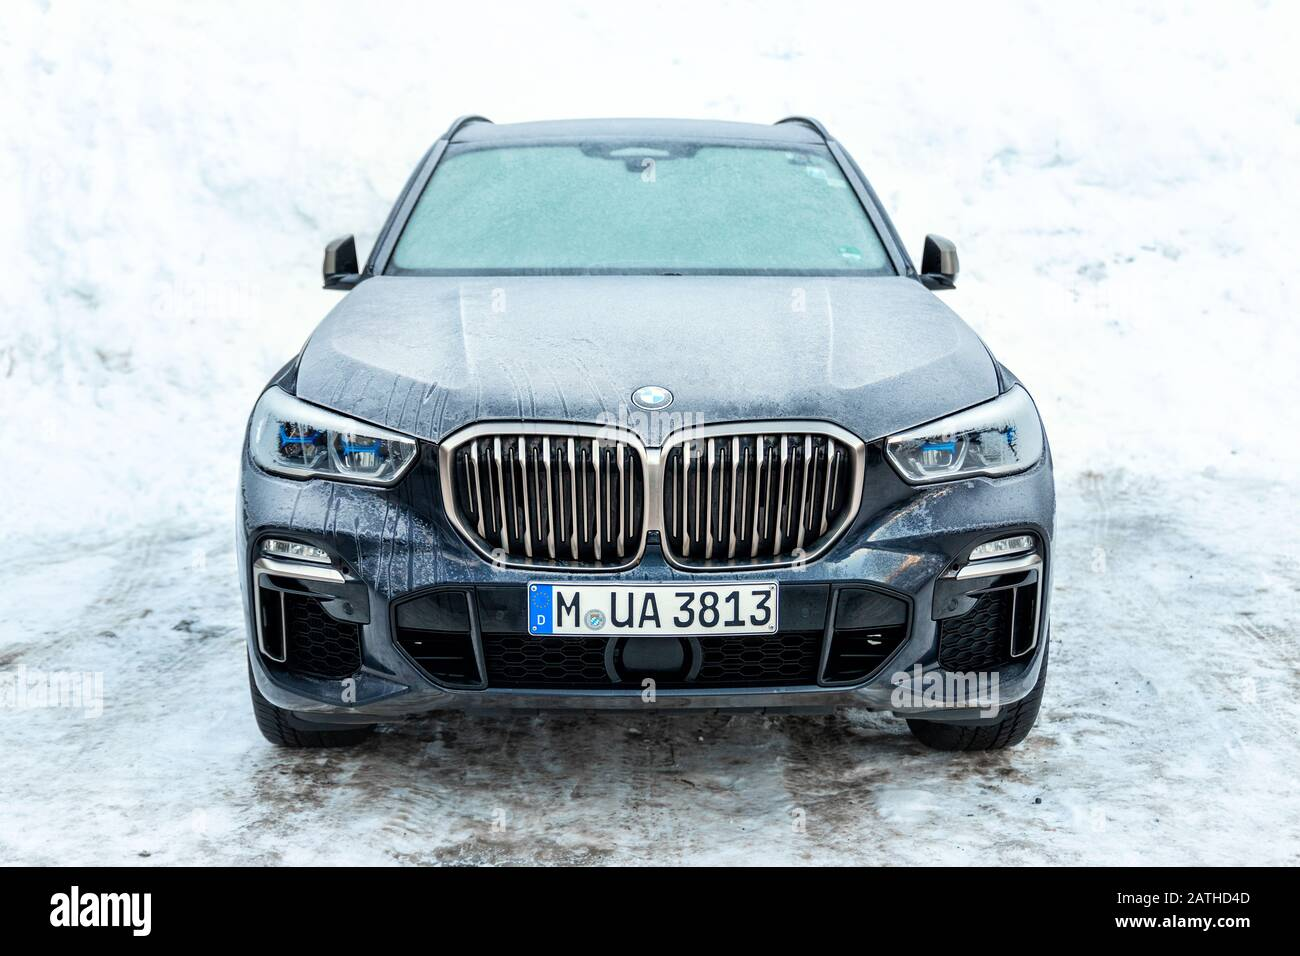 Ischgl Austria January 10th 2020 Newest Latest Bmw X5 G05 Luxury Suv Parked Outdoors On Cold Winter Day Wehicle Covered With Gorfrost And Icicles Stock Photo Alamy